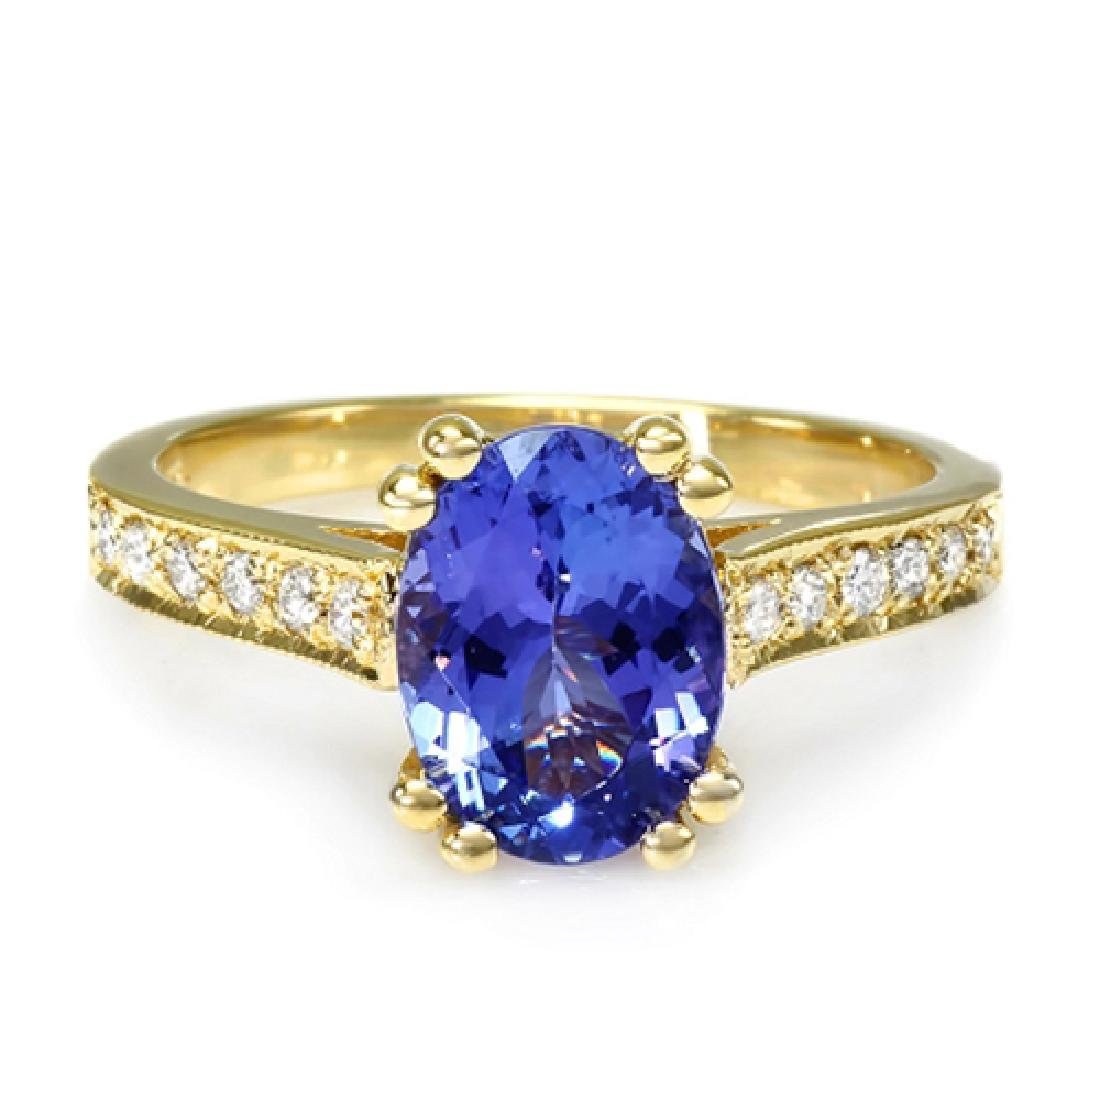 2.15 Carat Natural Tanzanite 18K Solid Yellow Gold